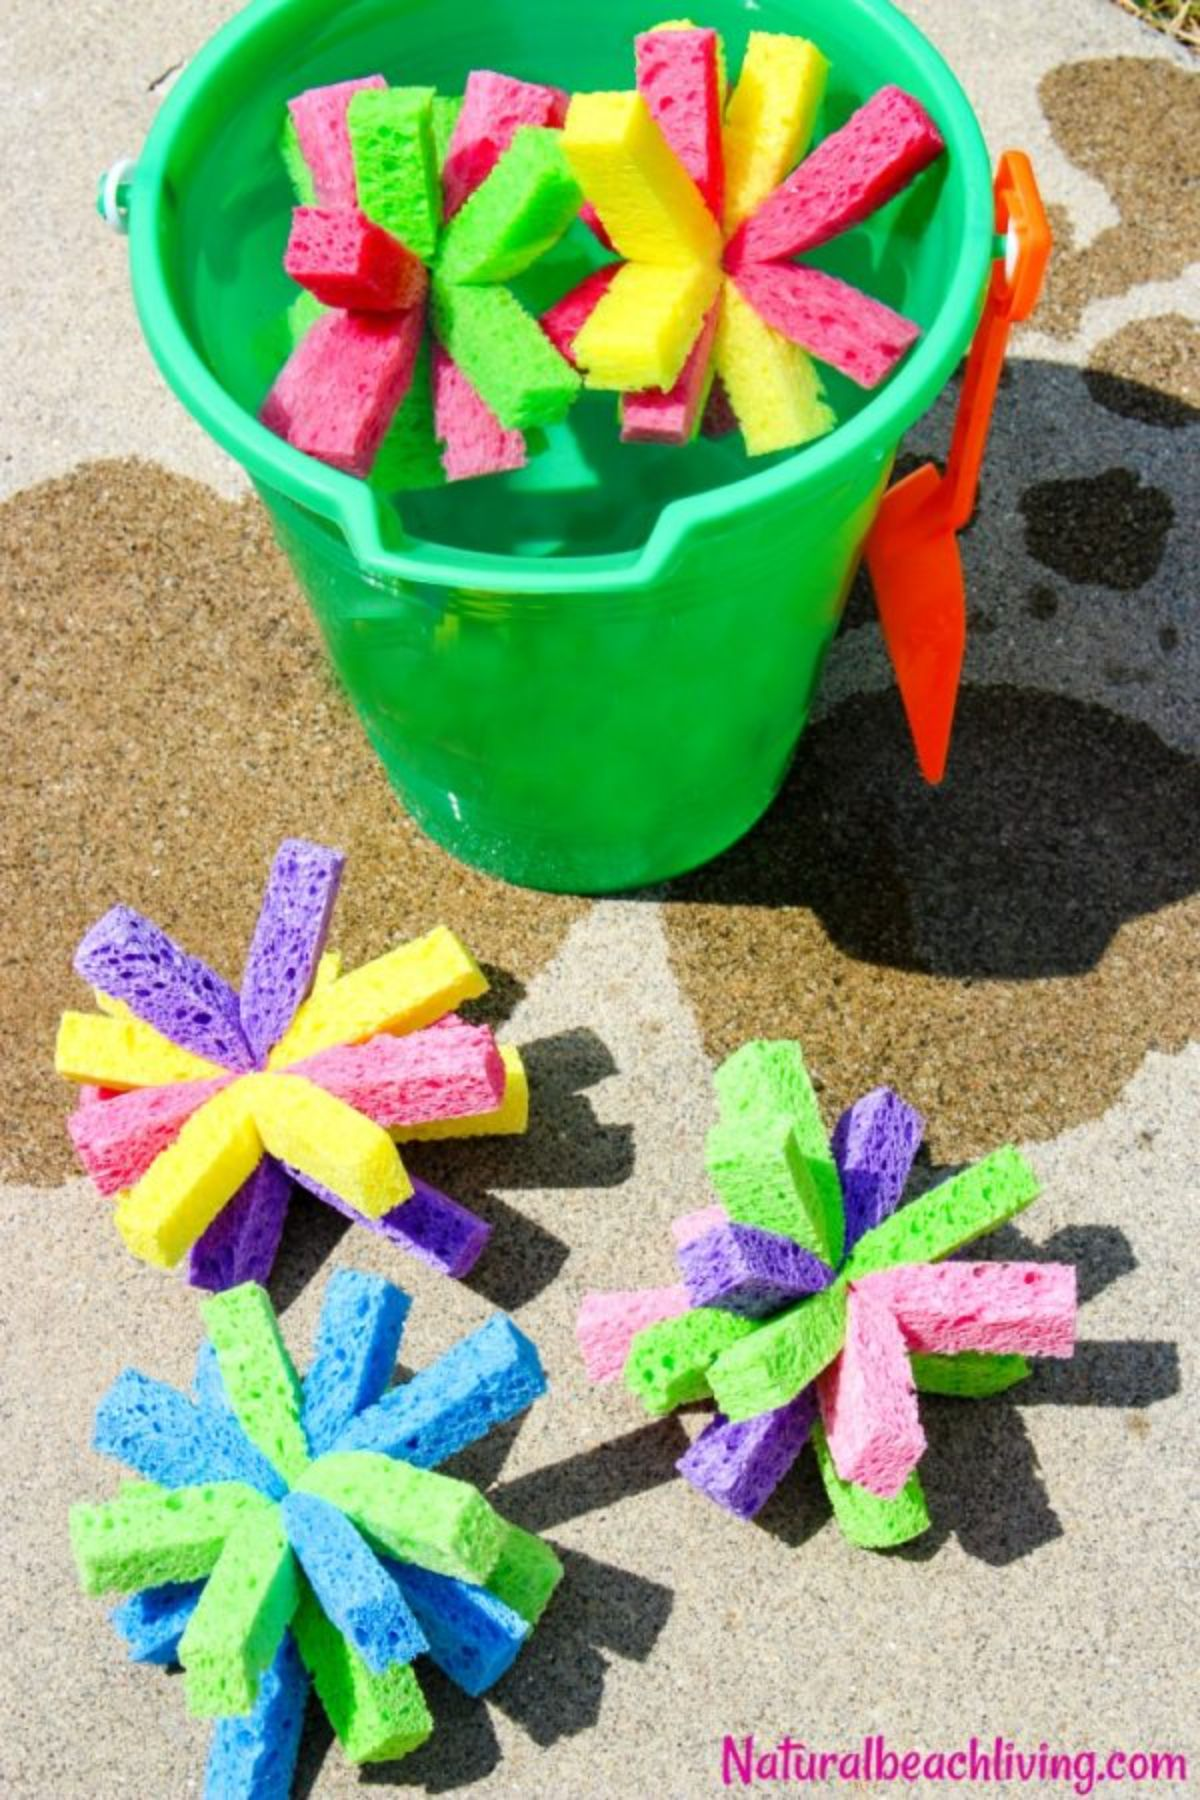 """The text reads """"naturalbeachliving.com"""" The image is of a green buscket full of water with star-shaped sponges floating in the top. 3 sponges are in front of the bucket."""